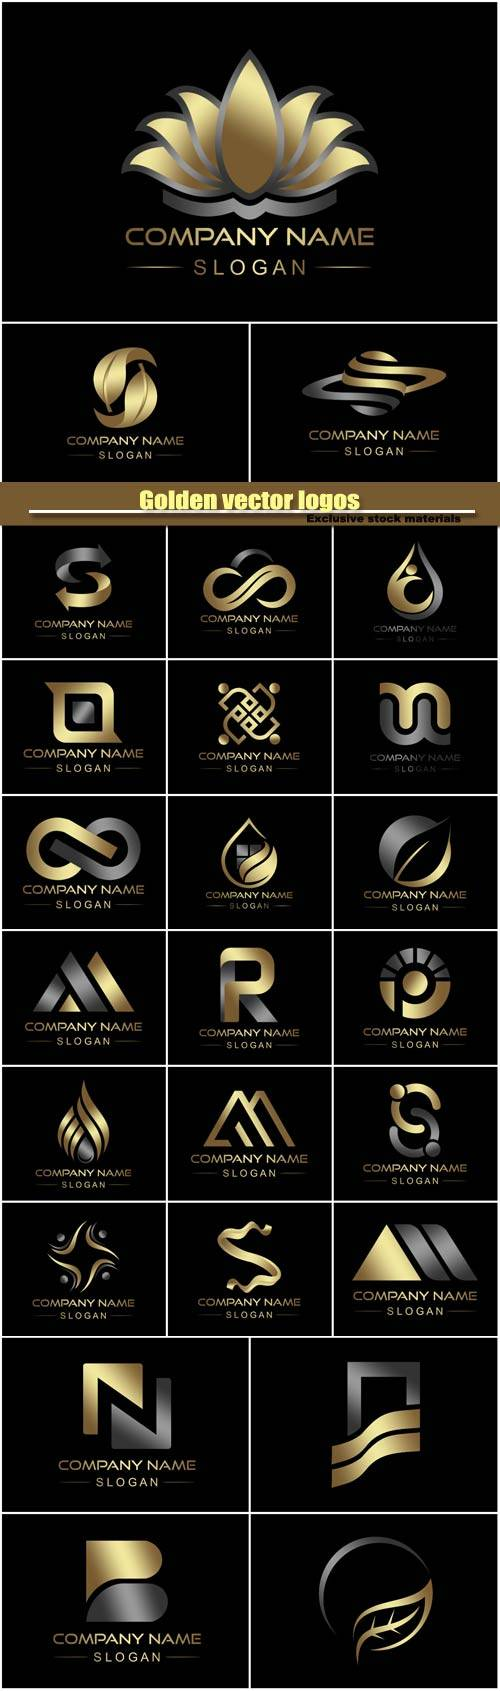 Golden vector logos, business company icon